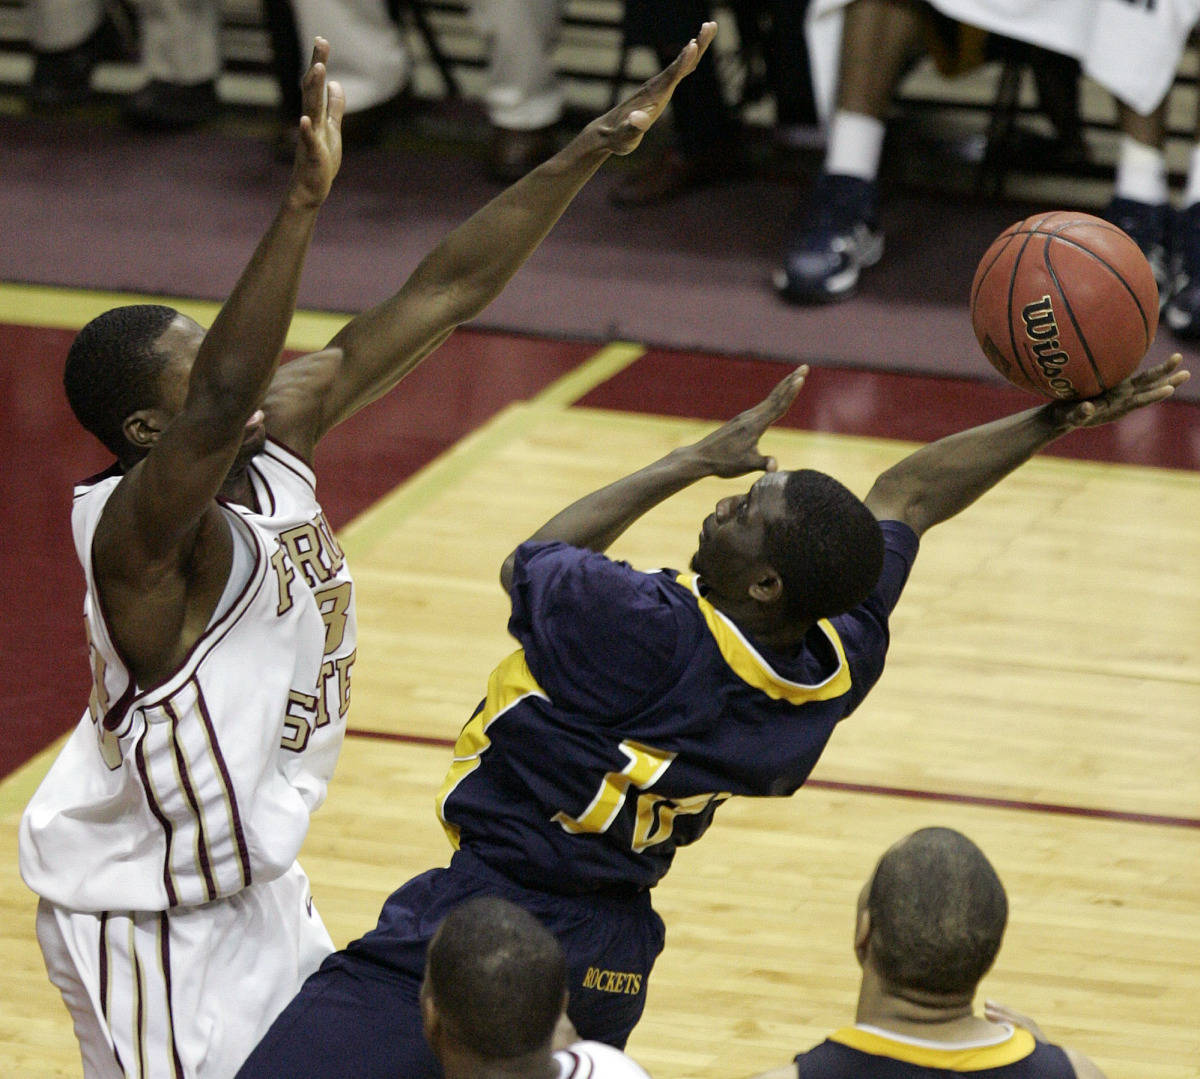 Toledo's Kashif Payne couldn't get this off-balance shot to fall as Florida State's Isaiah Swann provides the defense. (AP Photo/Steve Cannon)